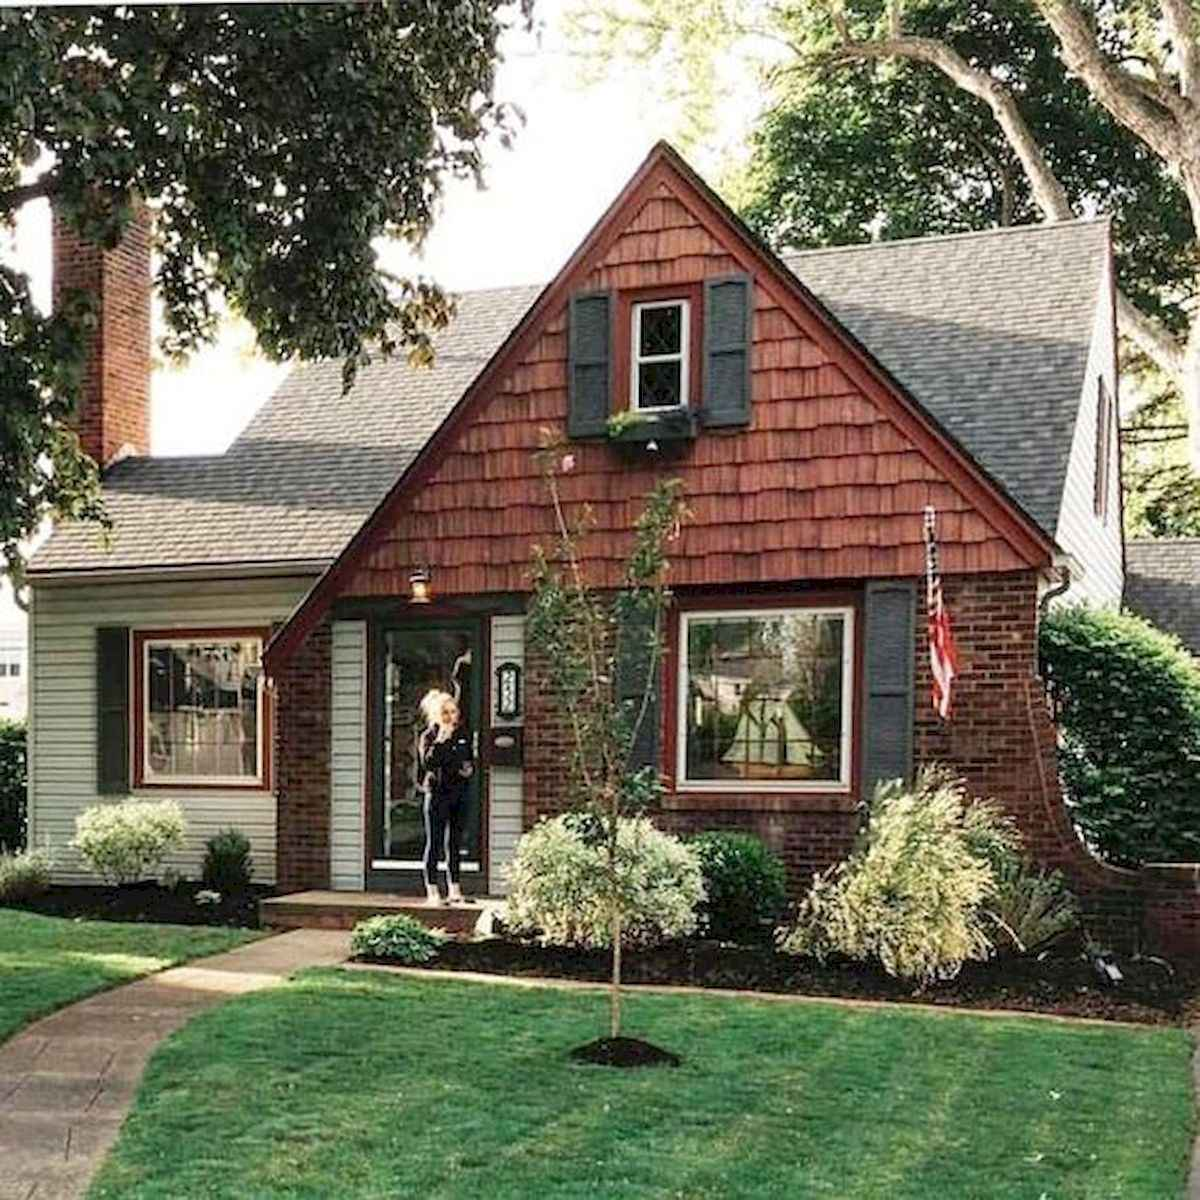 60 Beautiful Tiny House Plans Small Cottages Design Ideas (48)